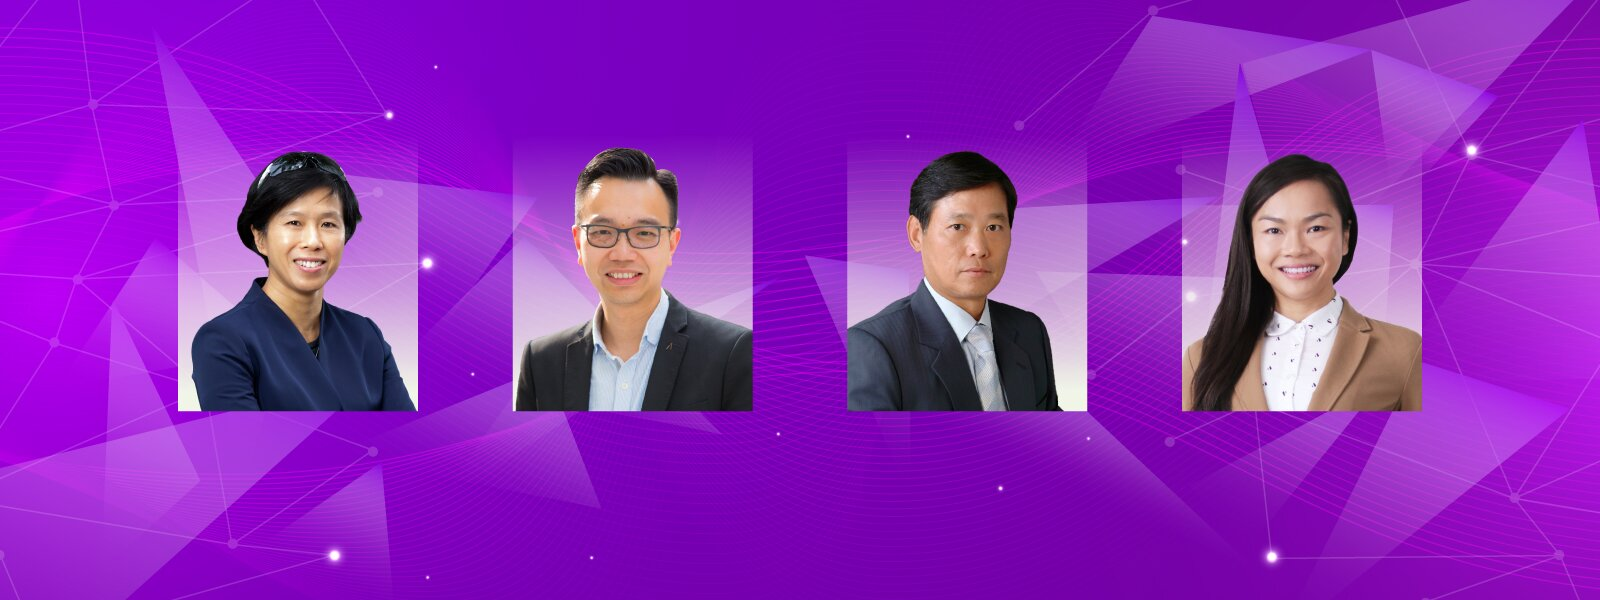 [:en EdUHK to Present Honorary Fellowships to Four Distinguished Individuals  教大頒授榮譽院士銜 表揚四位傑出人士